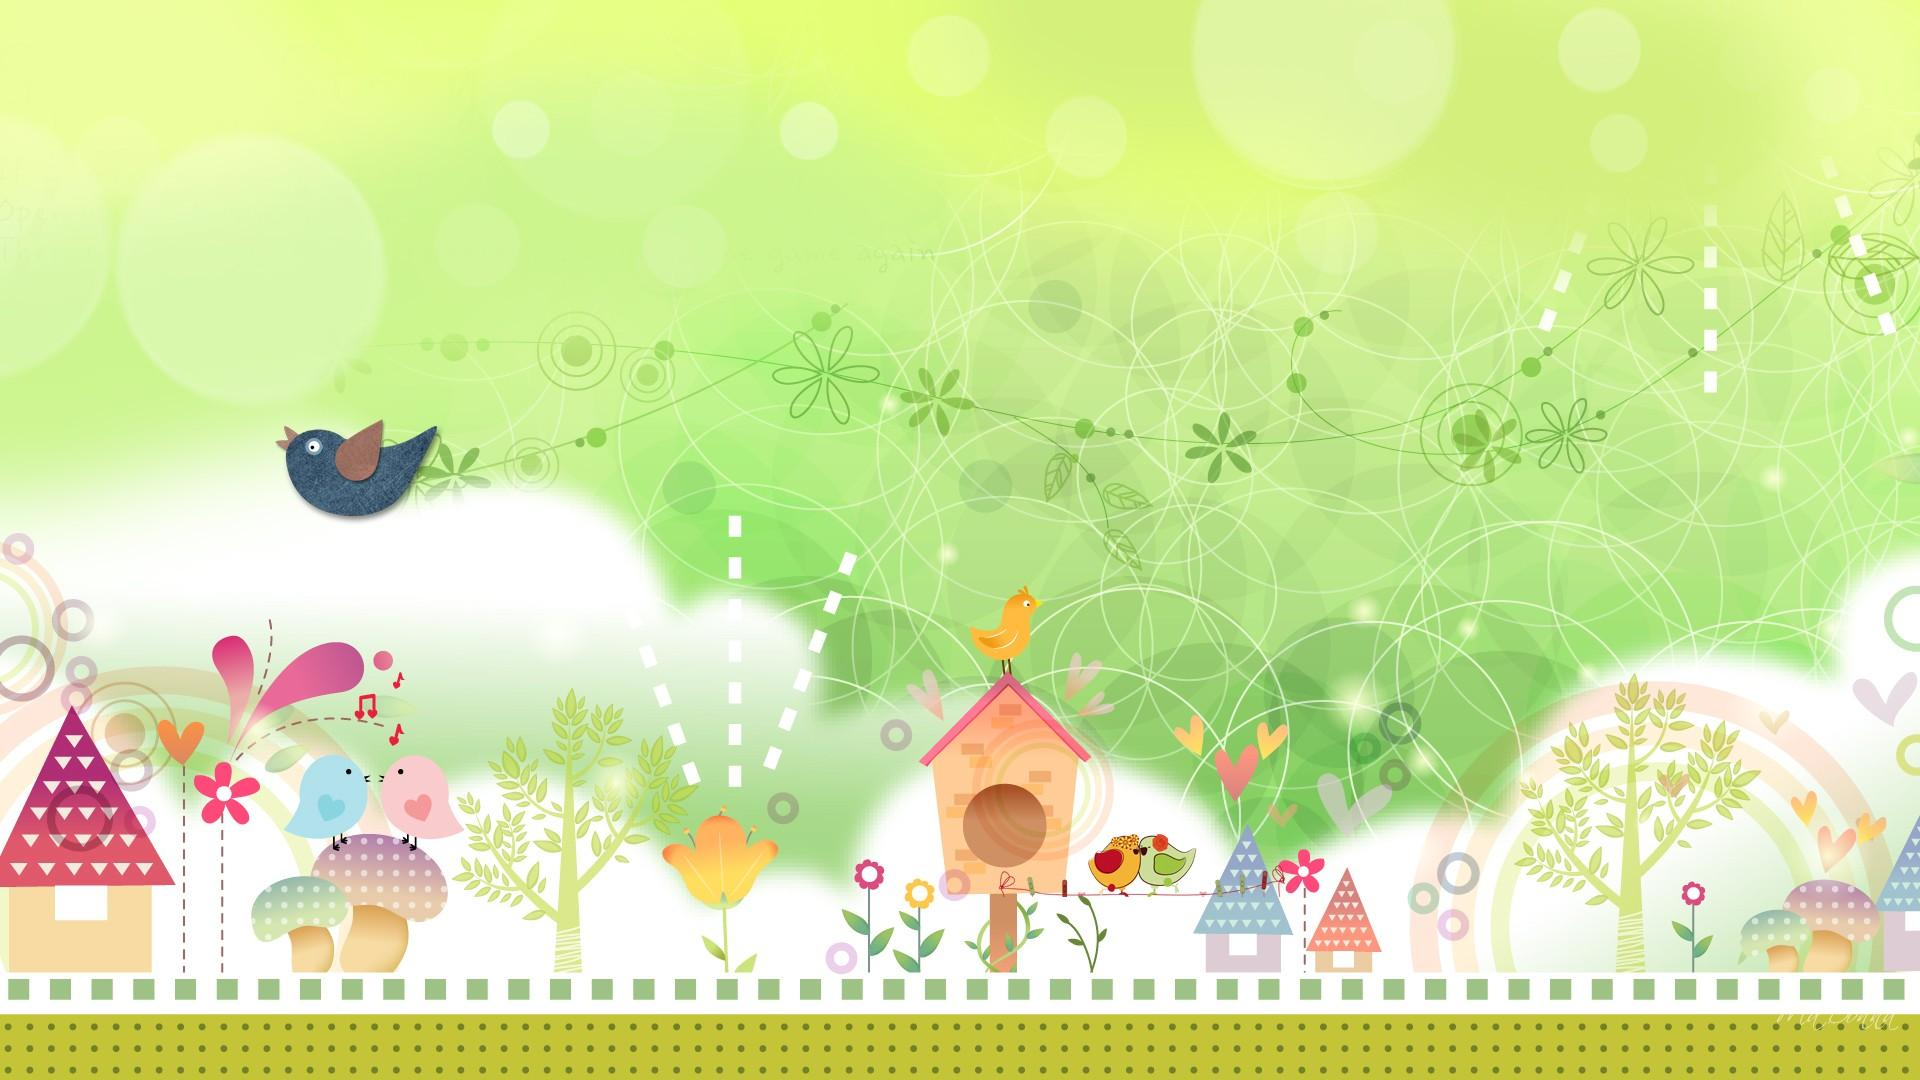 Best 56 Whimsical Backgrounds on HipWallpaper Whimsical 1920x1080